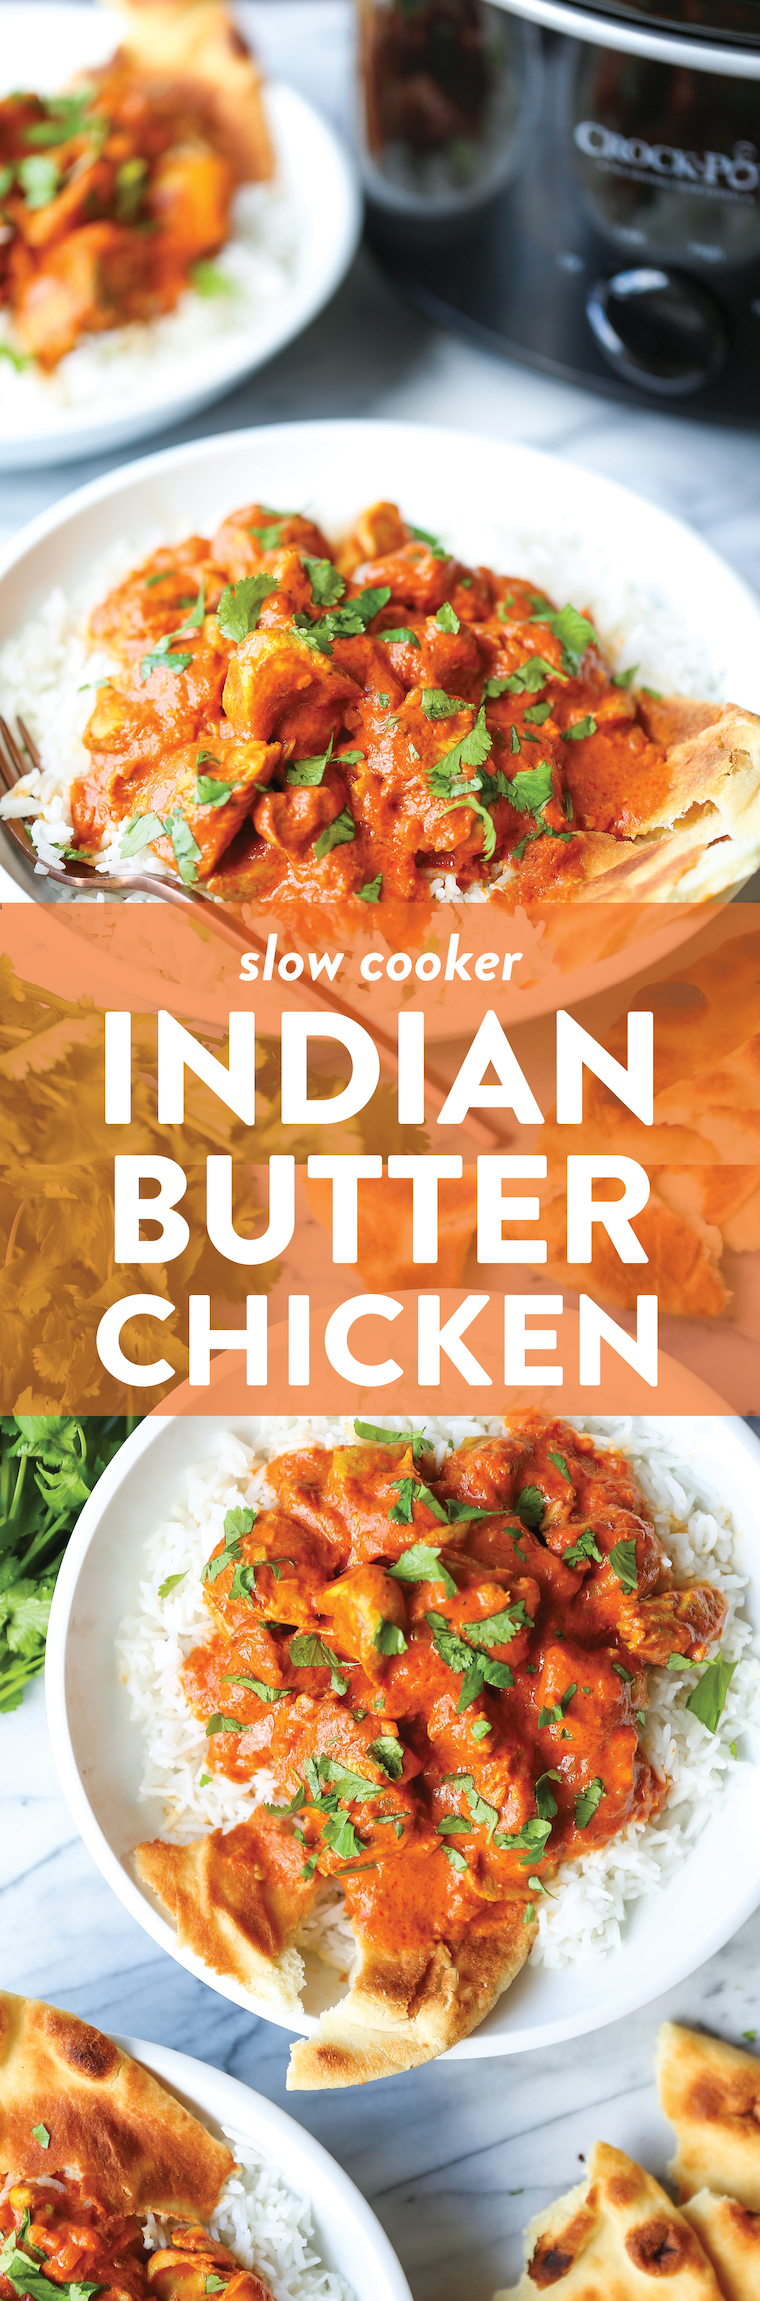 Slow Cooker Indian Butter Chicken - Simple prep with zero fuss! Restaurant-quality butter chicken made so easily in the crockpot. Serve with rice and naan.